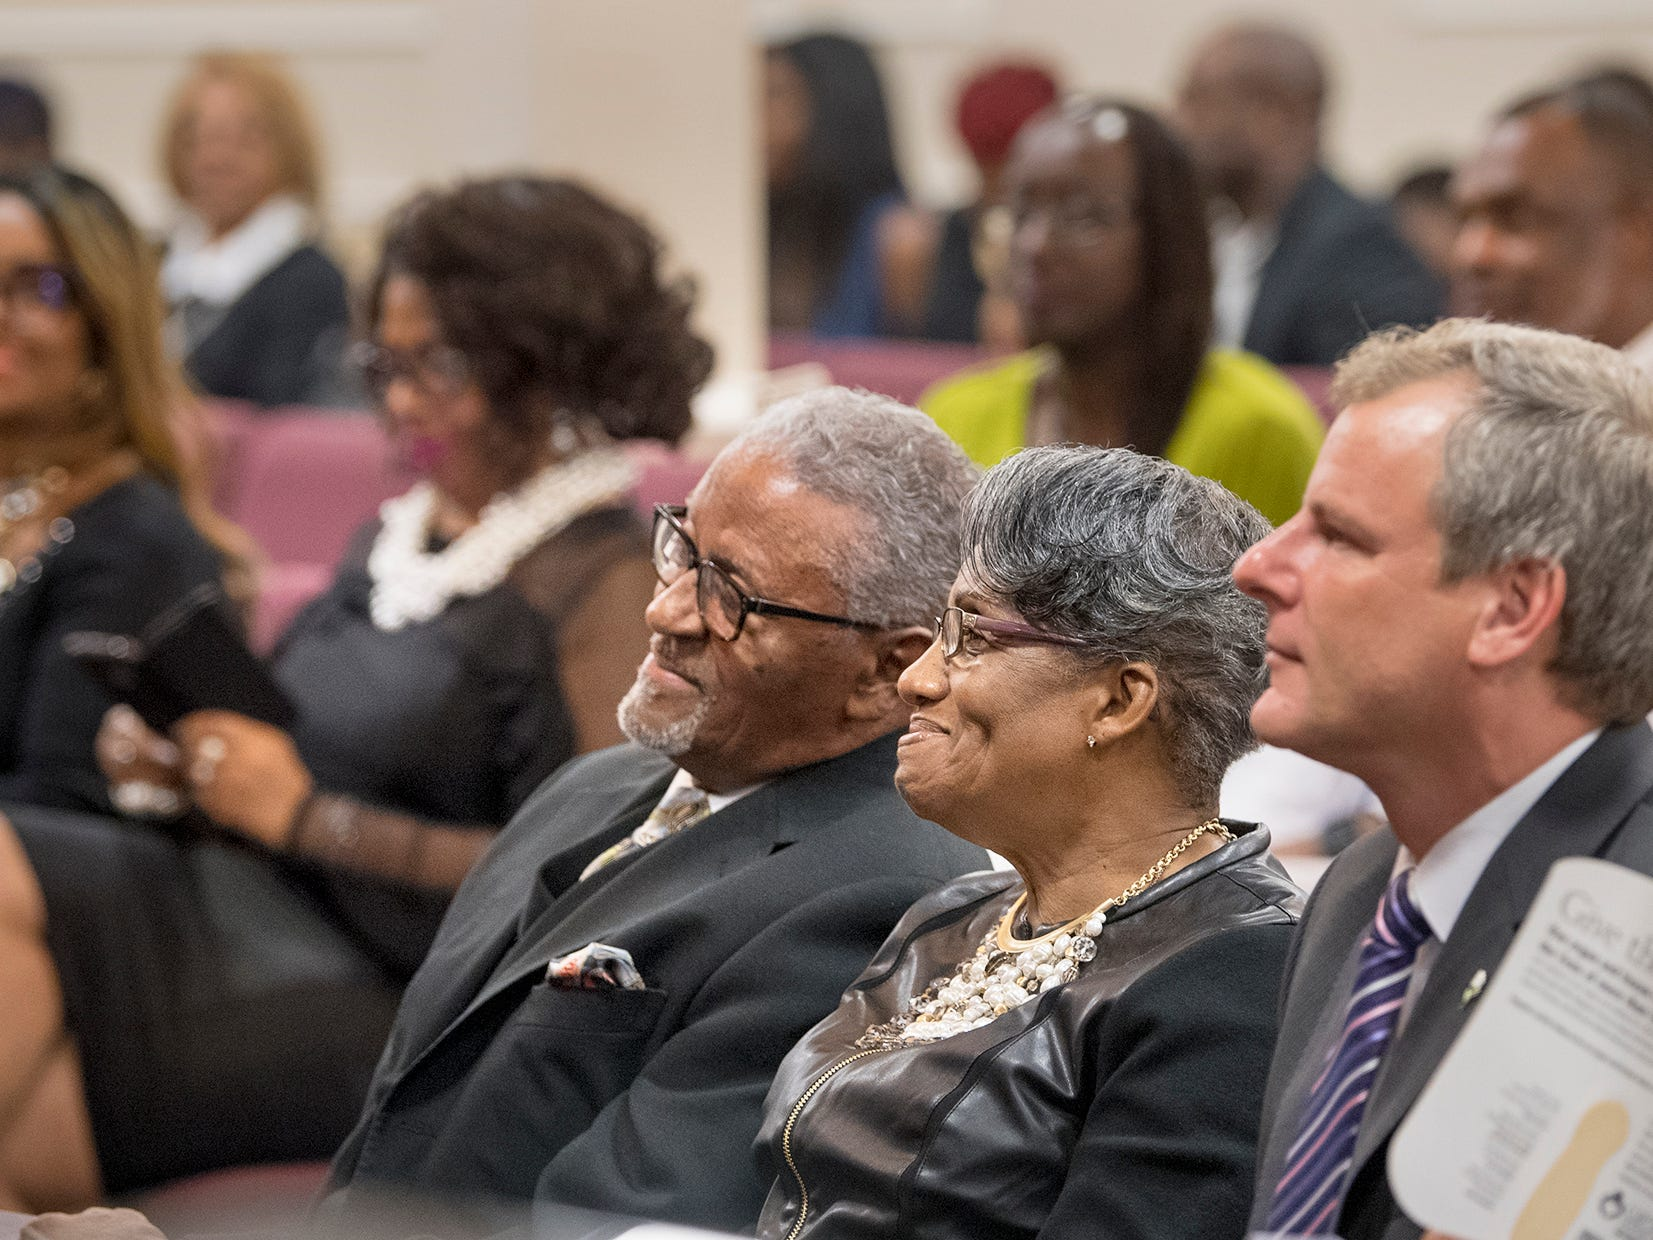 From the left, Bishop Carl H. Scott, his wife Diane and York Mayor Michael Helfrich listen to the speakers during the street Naming Ceremony at Bible Tabernacle Church.